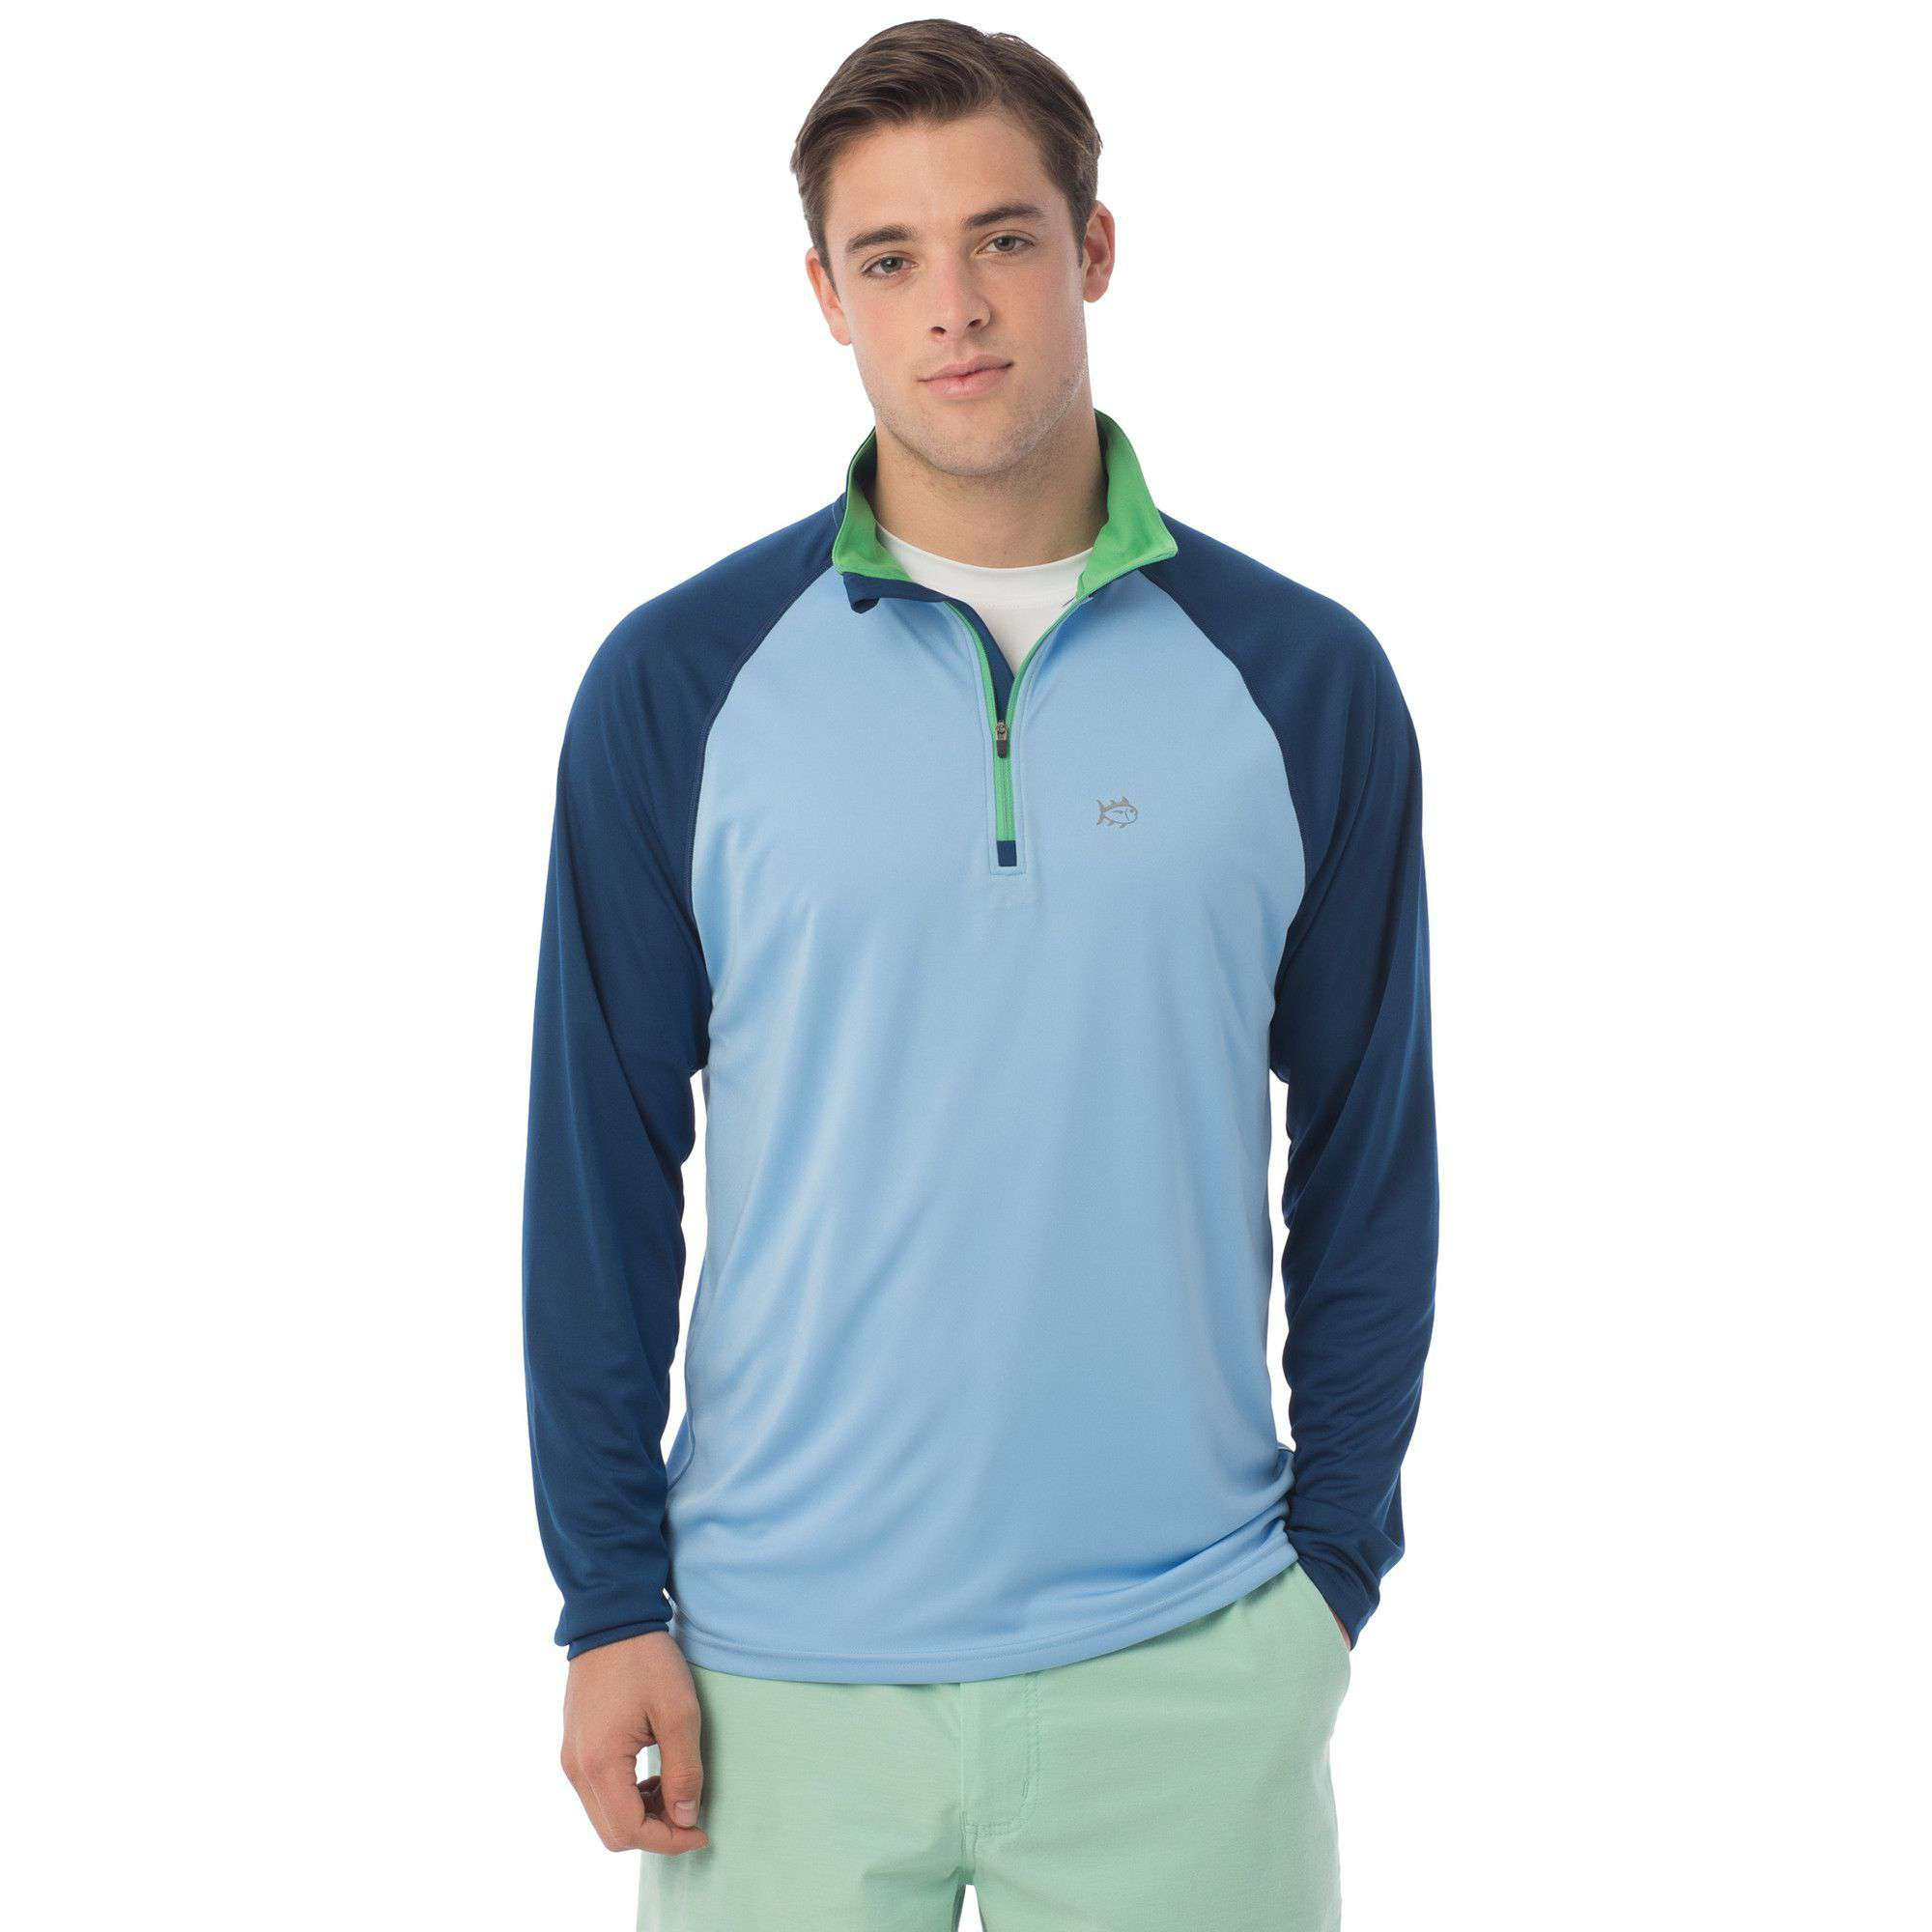 Tide to Trail Performance 1/4 Zip in Ocean Channel by Southern Tide